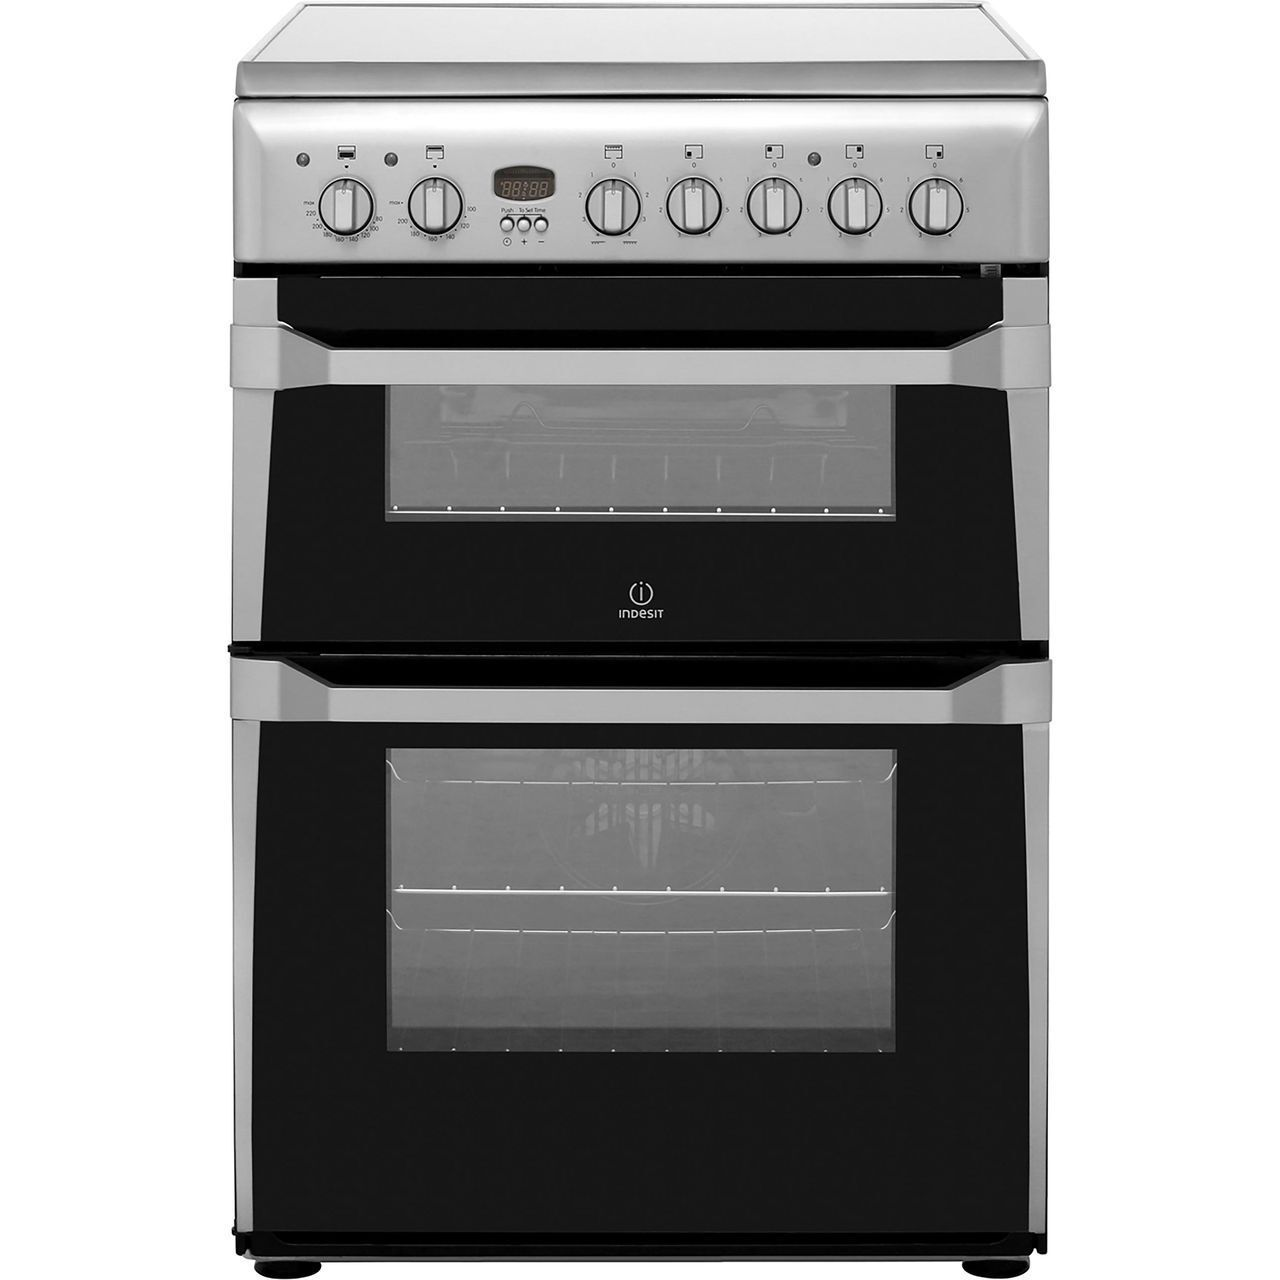 The best ovens for your kitchen